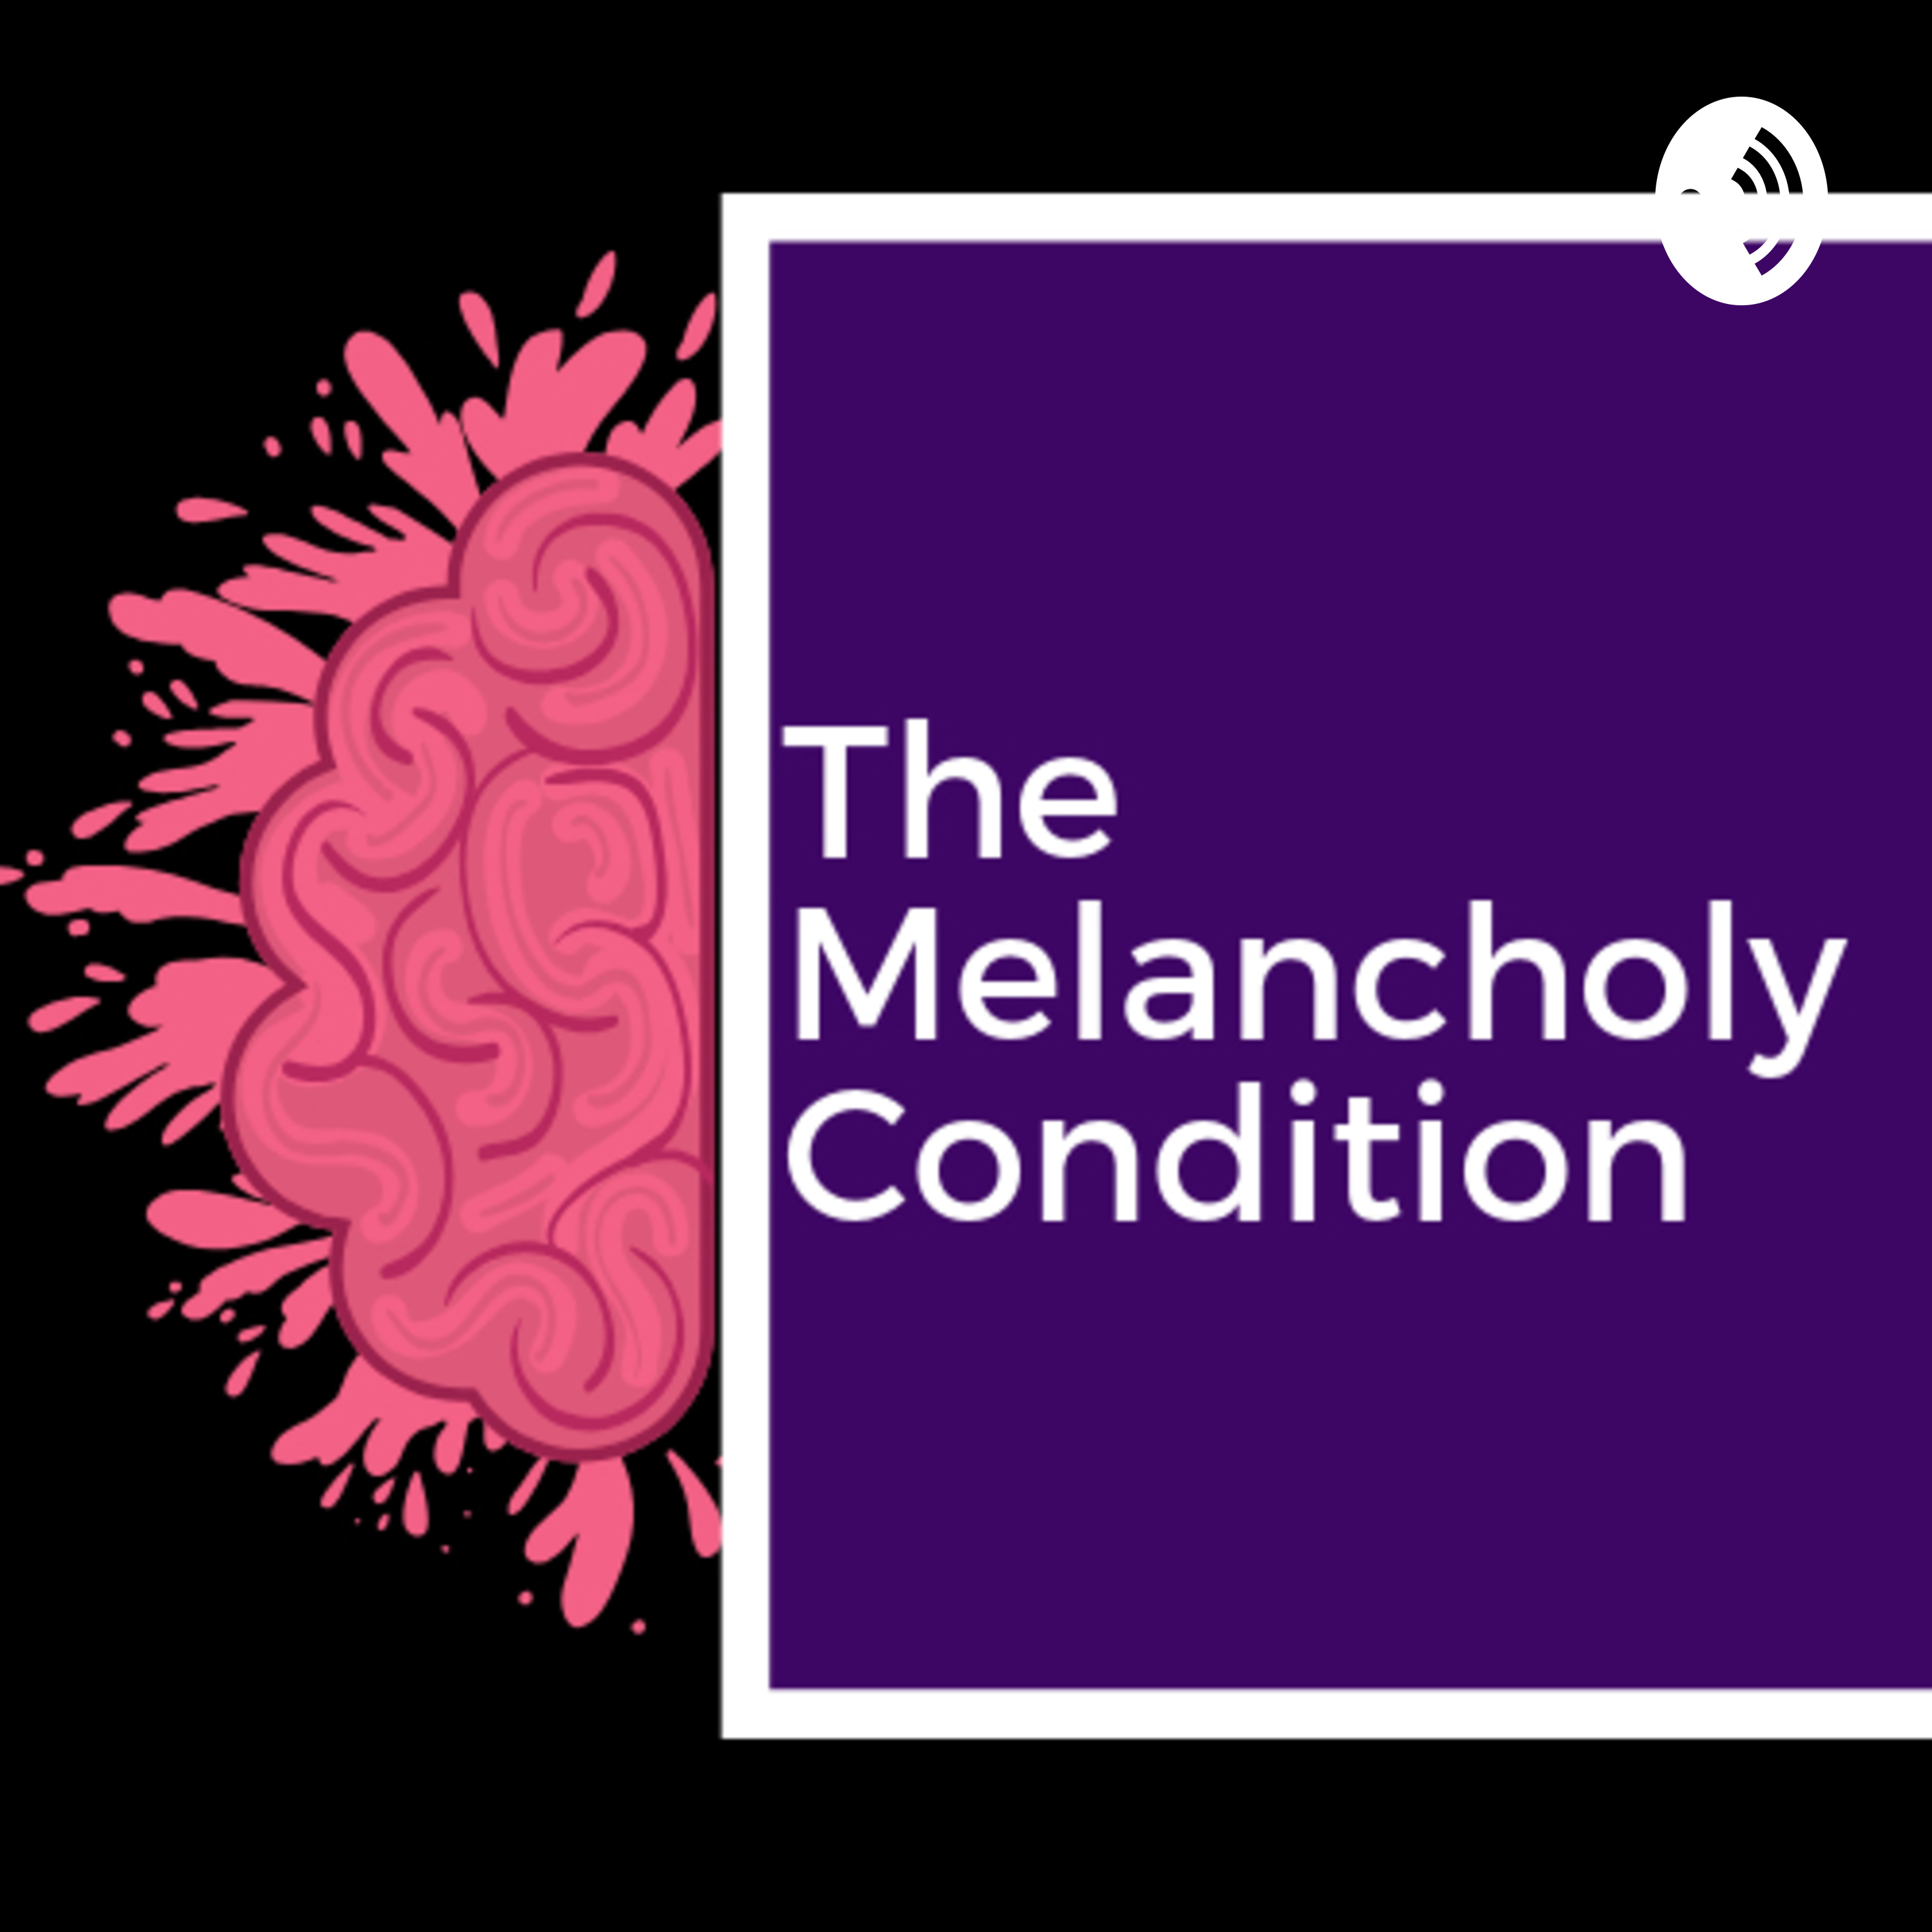 The Melancholy Condition